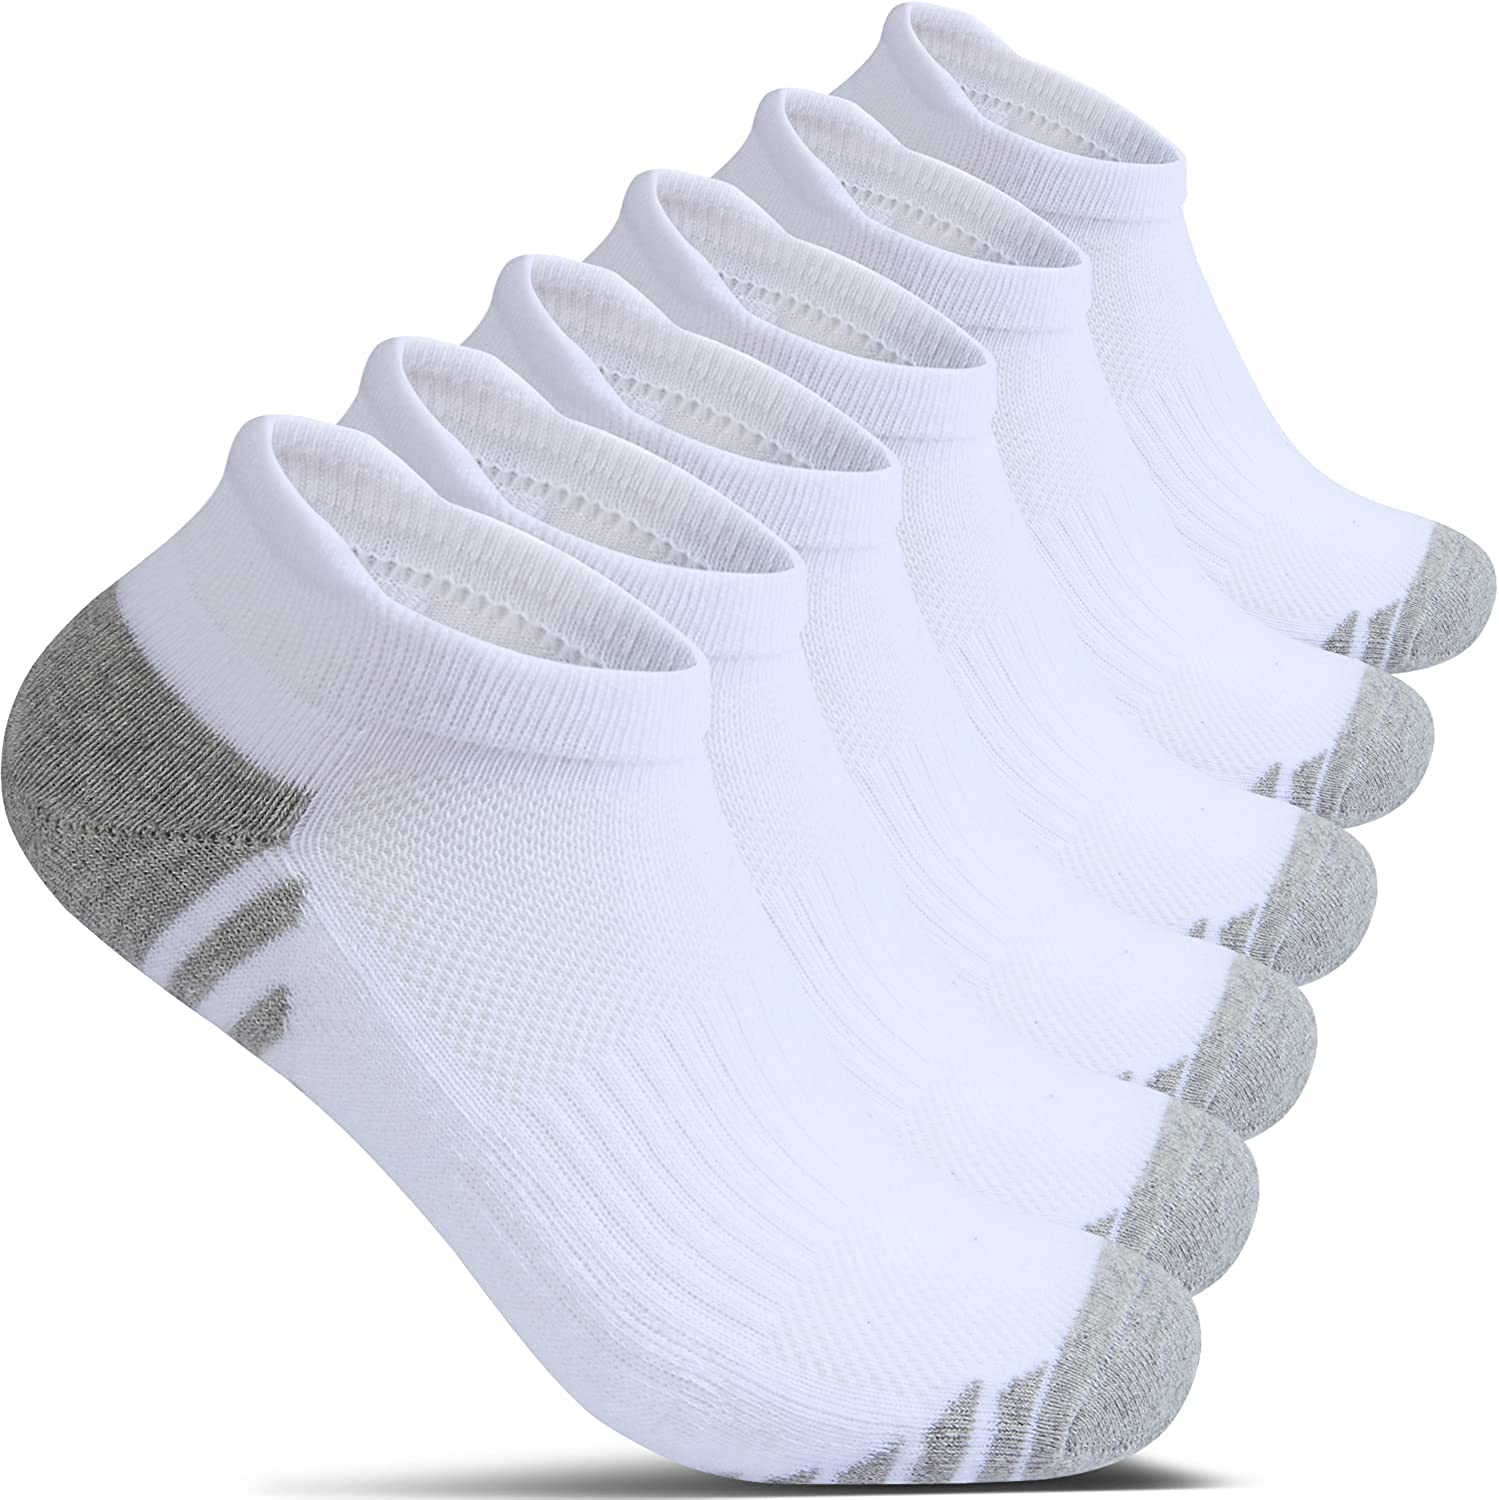 Cotton No Show Socks for Fees free Men gift With Ankle Cushion Tab Compre Heel